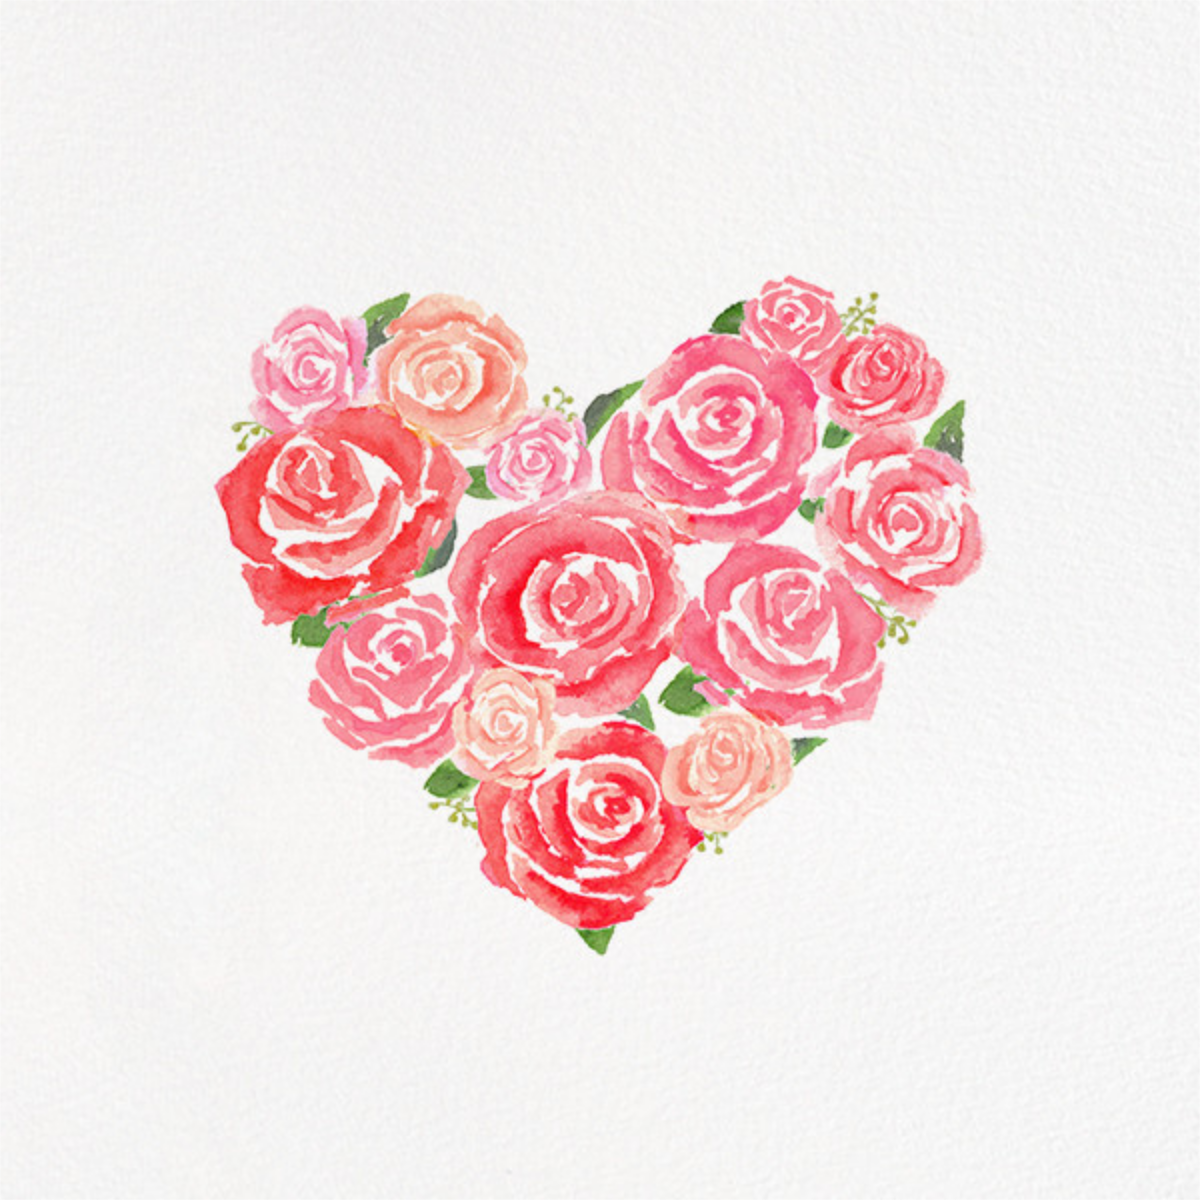 Heart in Bloom - Paperless Post - Valentine's Day